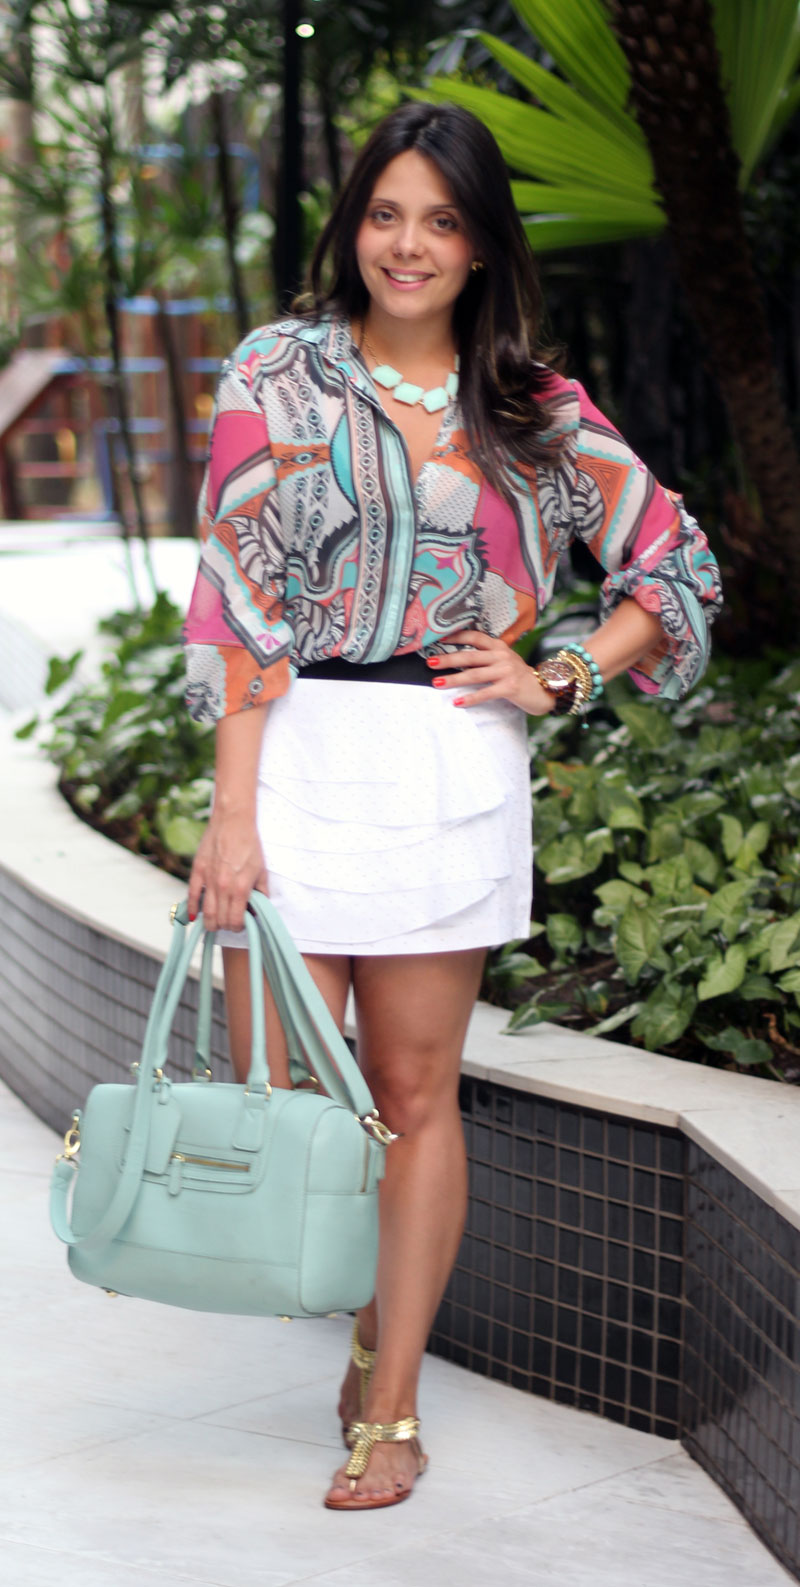 look camisa estampada saia branca claudinha stoco 5 Look Camisa Colorida e Saia Branca!